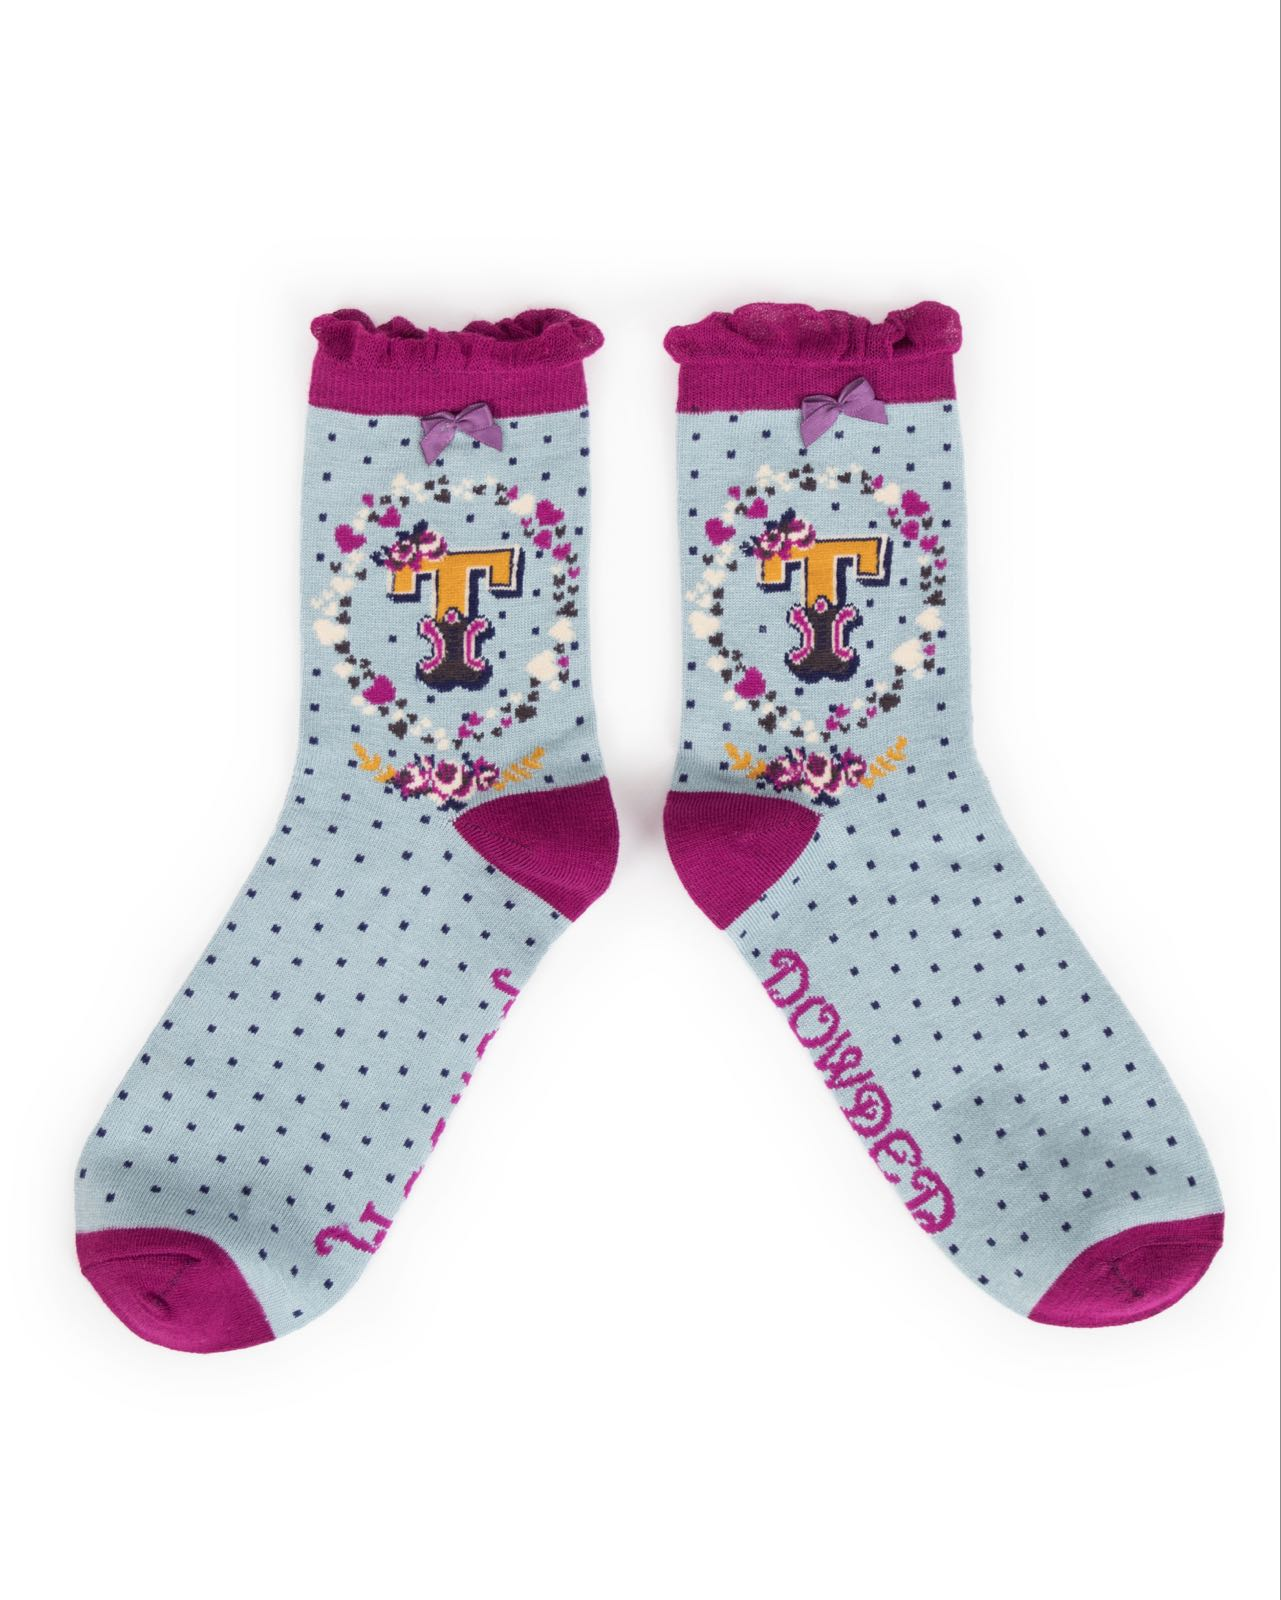 Powder Alphabet socks T (product may differ from item shown in the photo) 4-6 ladies